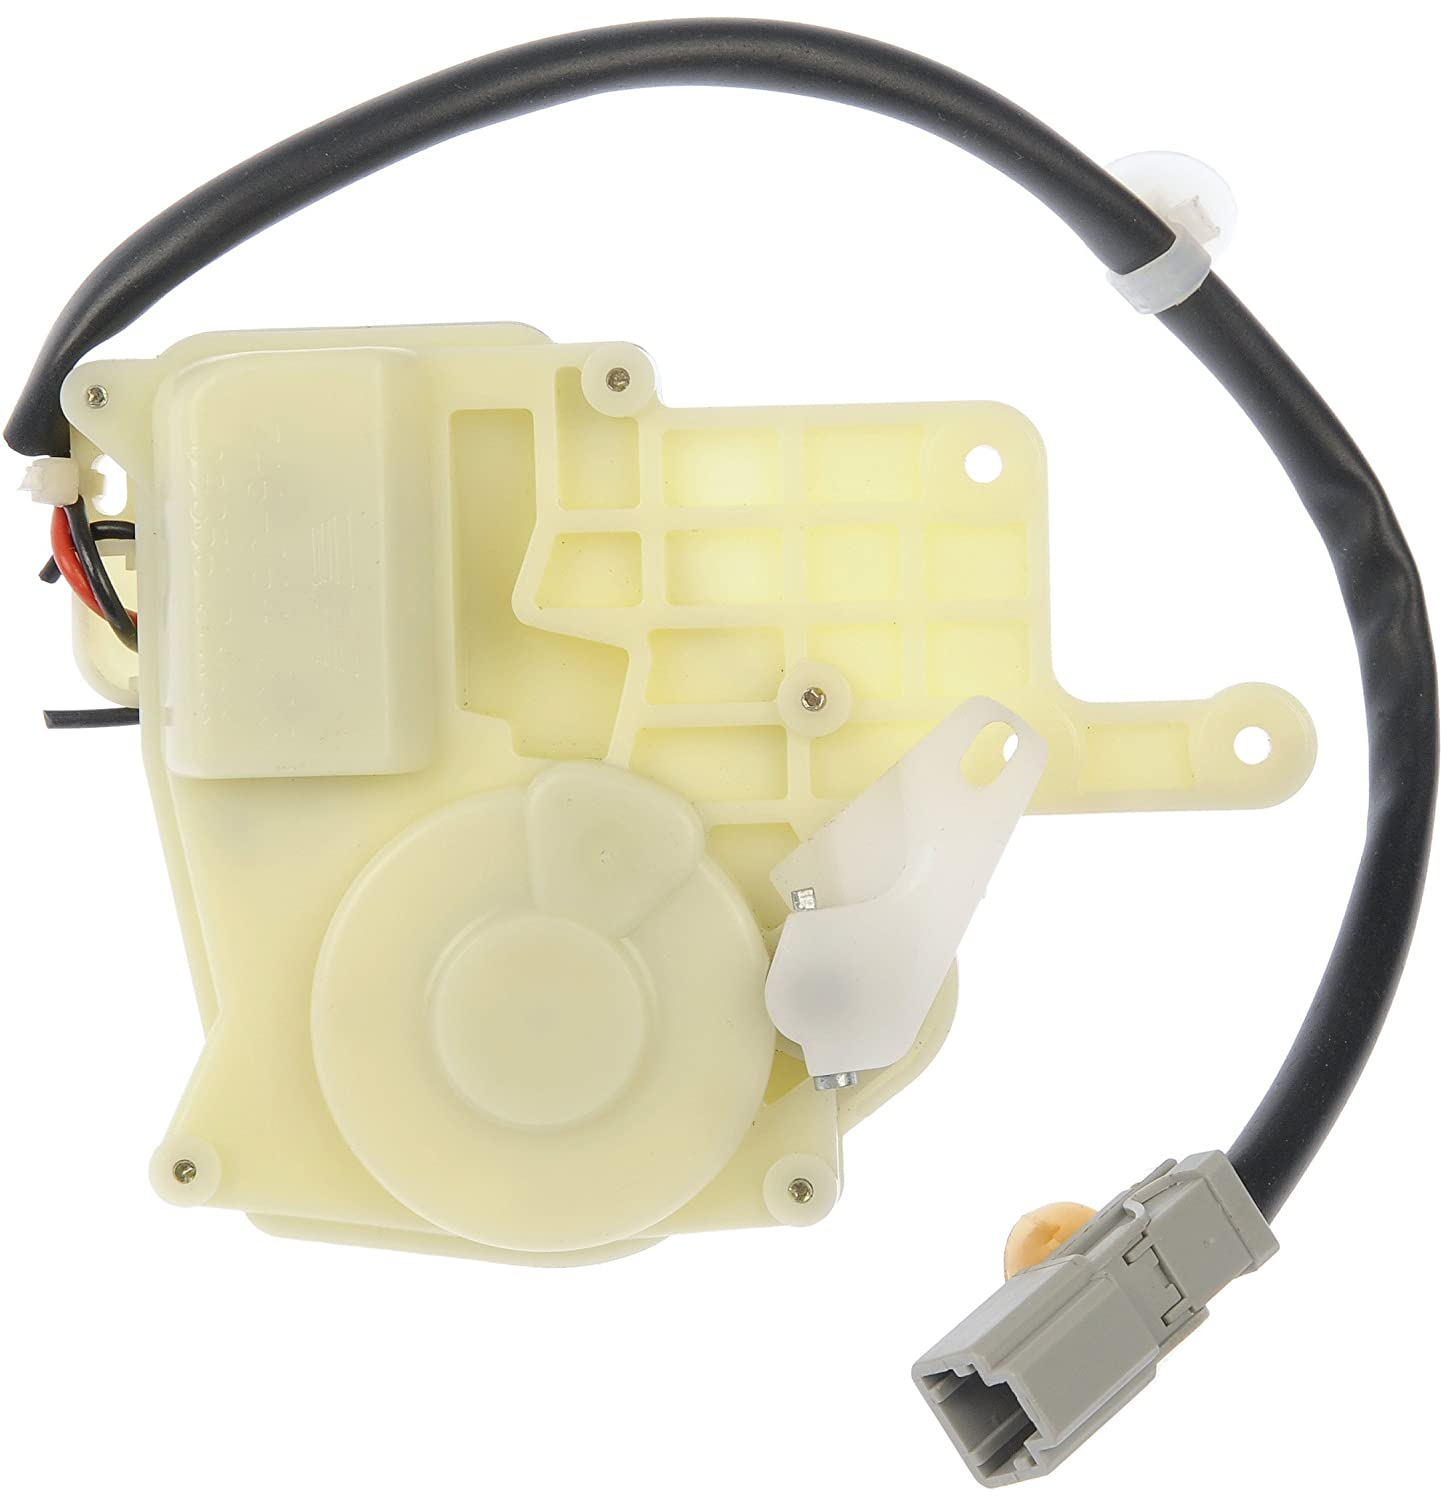 Dorman 746-364 Honda Civic Door Lock Actuator Motormite Products